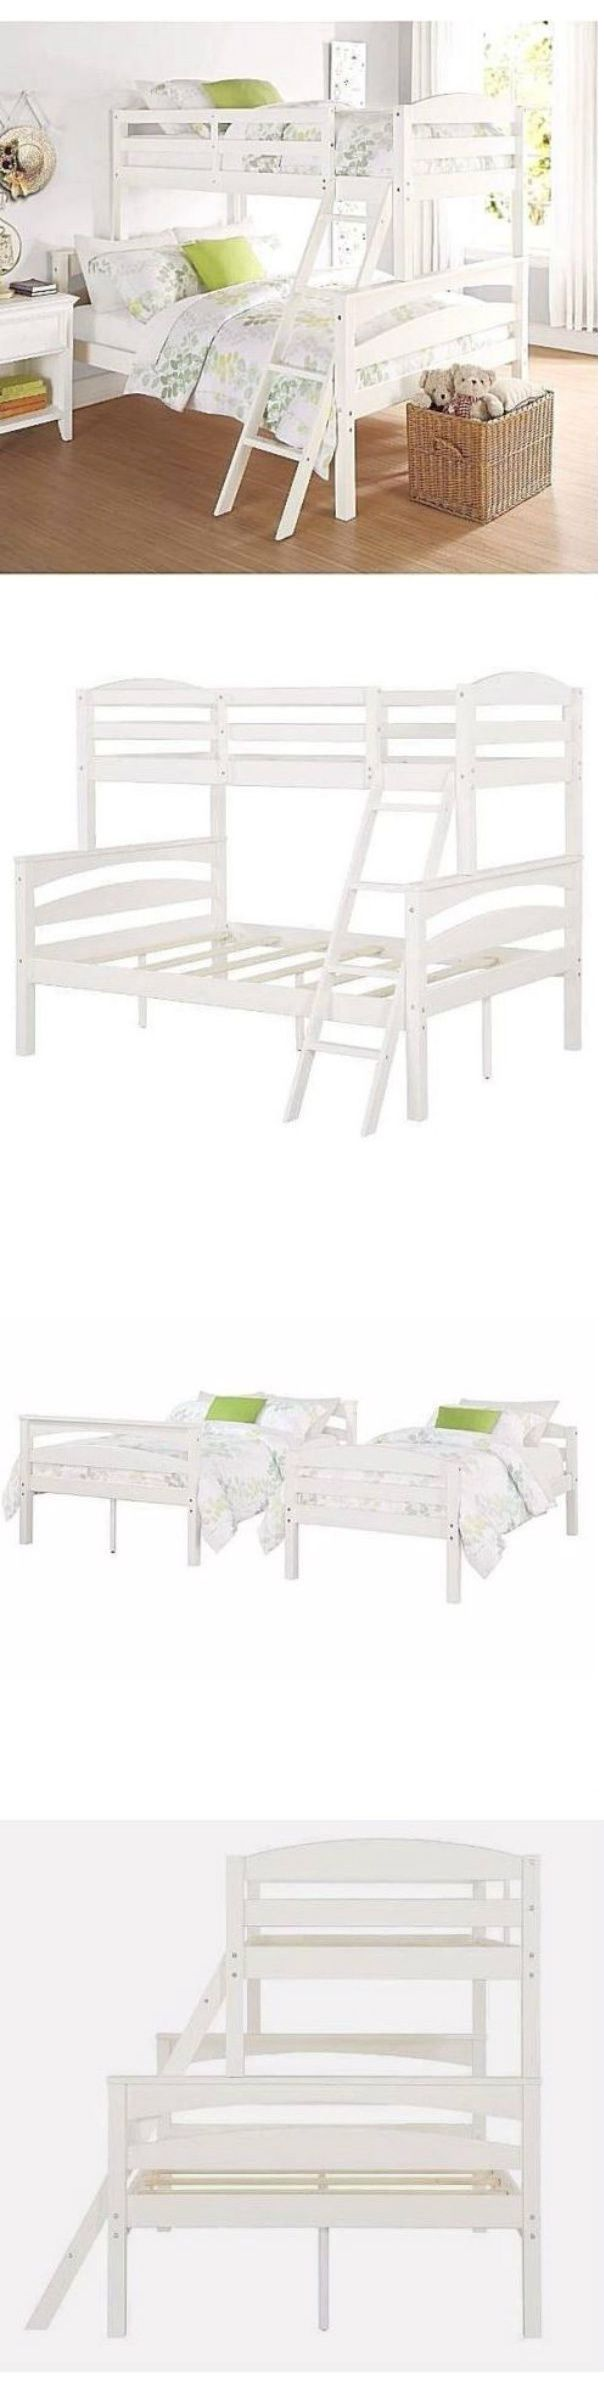 Kids Furniture: Solid Wood Bunk Beds Bedroom Furniture For Kids Detachable With Rails Ladder New BUY IT NOW ONLY: $379.99